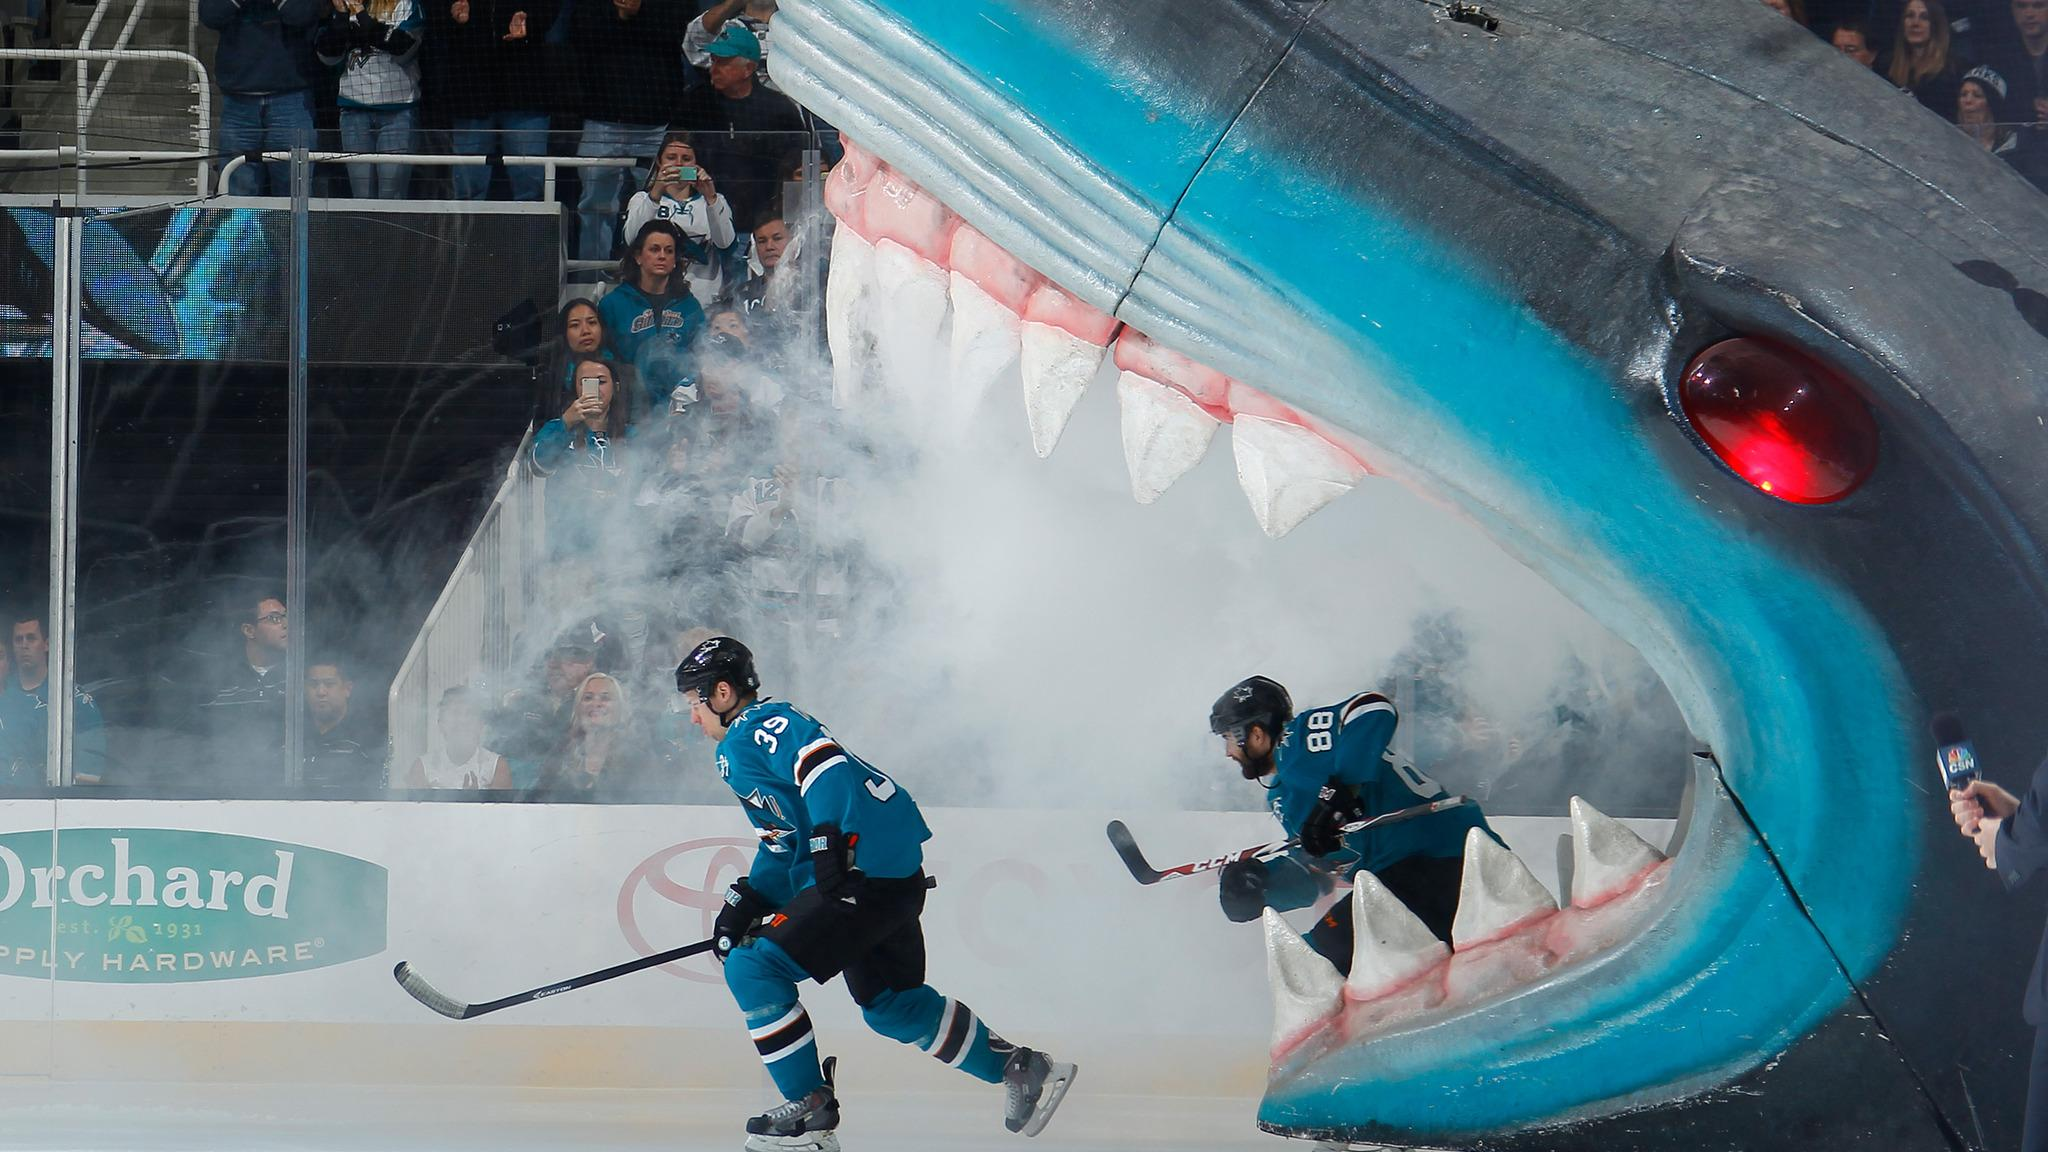 SORRY, THIS EVENT IS NO LONGER ACTIVE<br>San Jose Sharks vs. Montreal Canadiens - San Jose, CA 95113